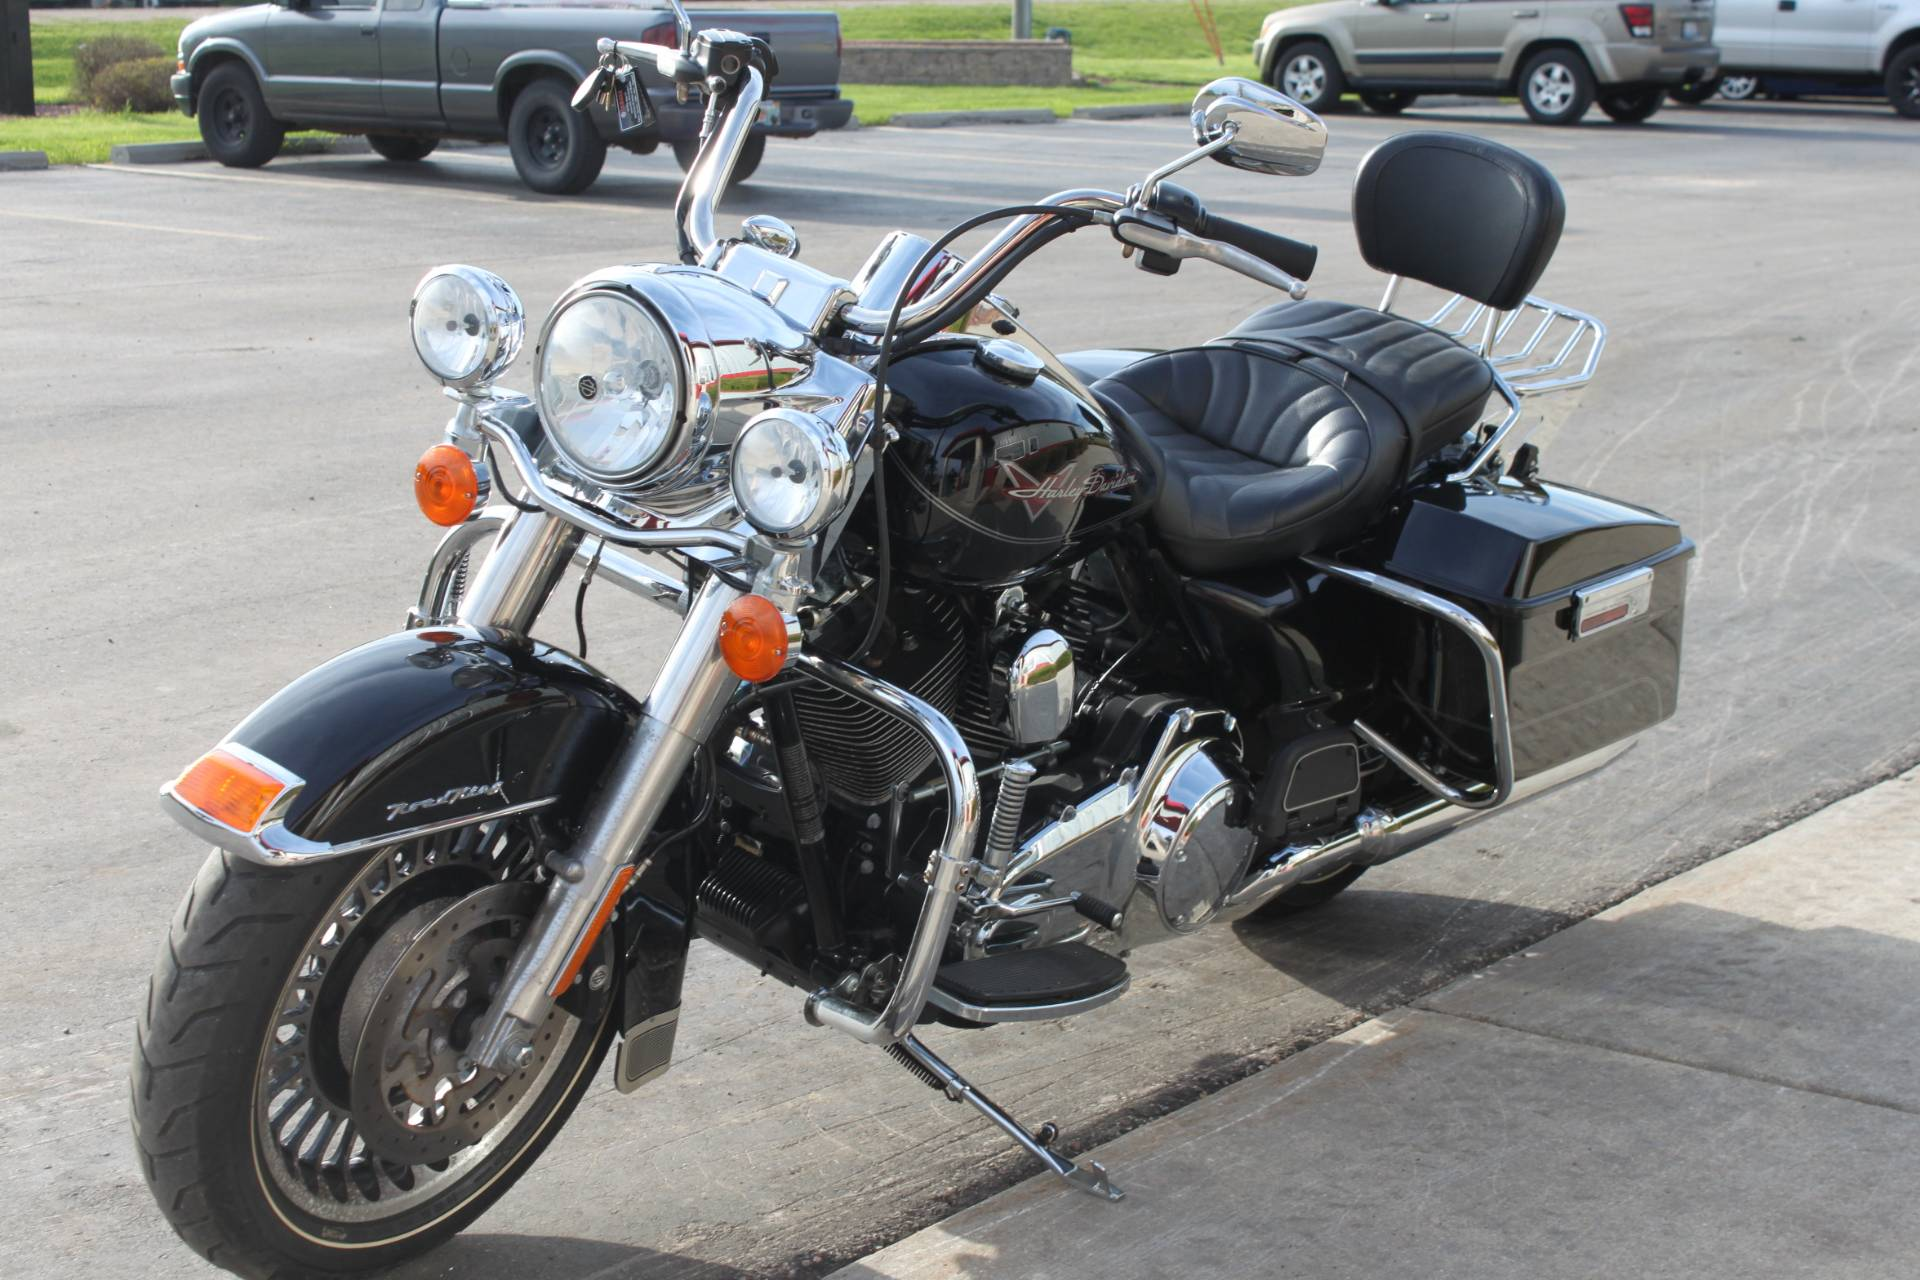 2009 Harley-Davidson Road King 4